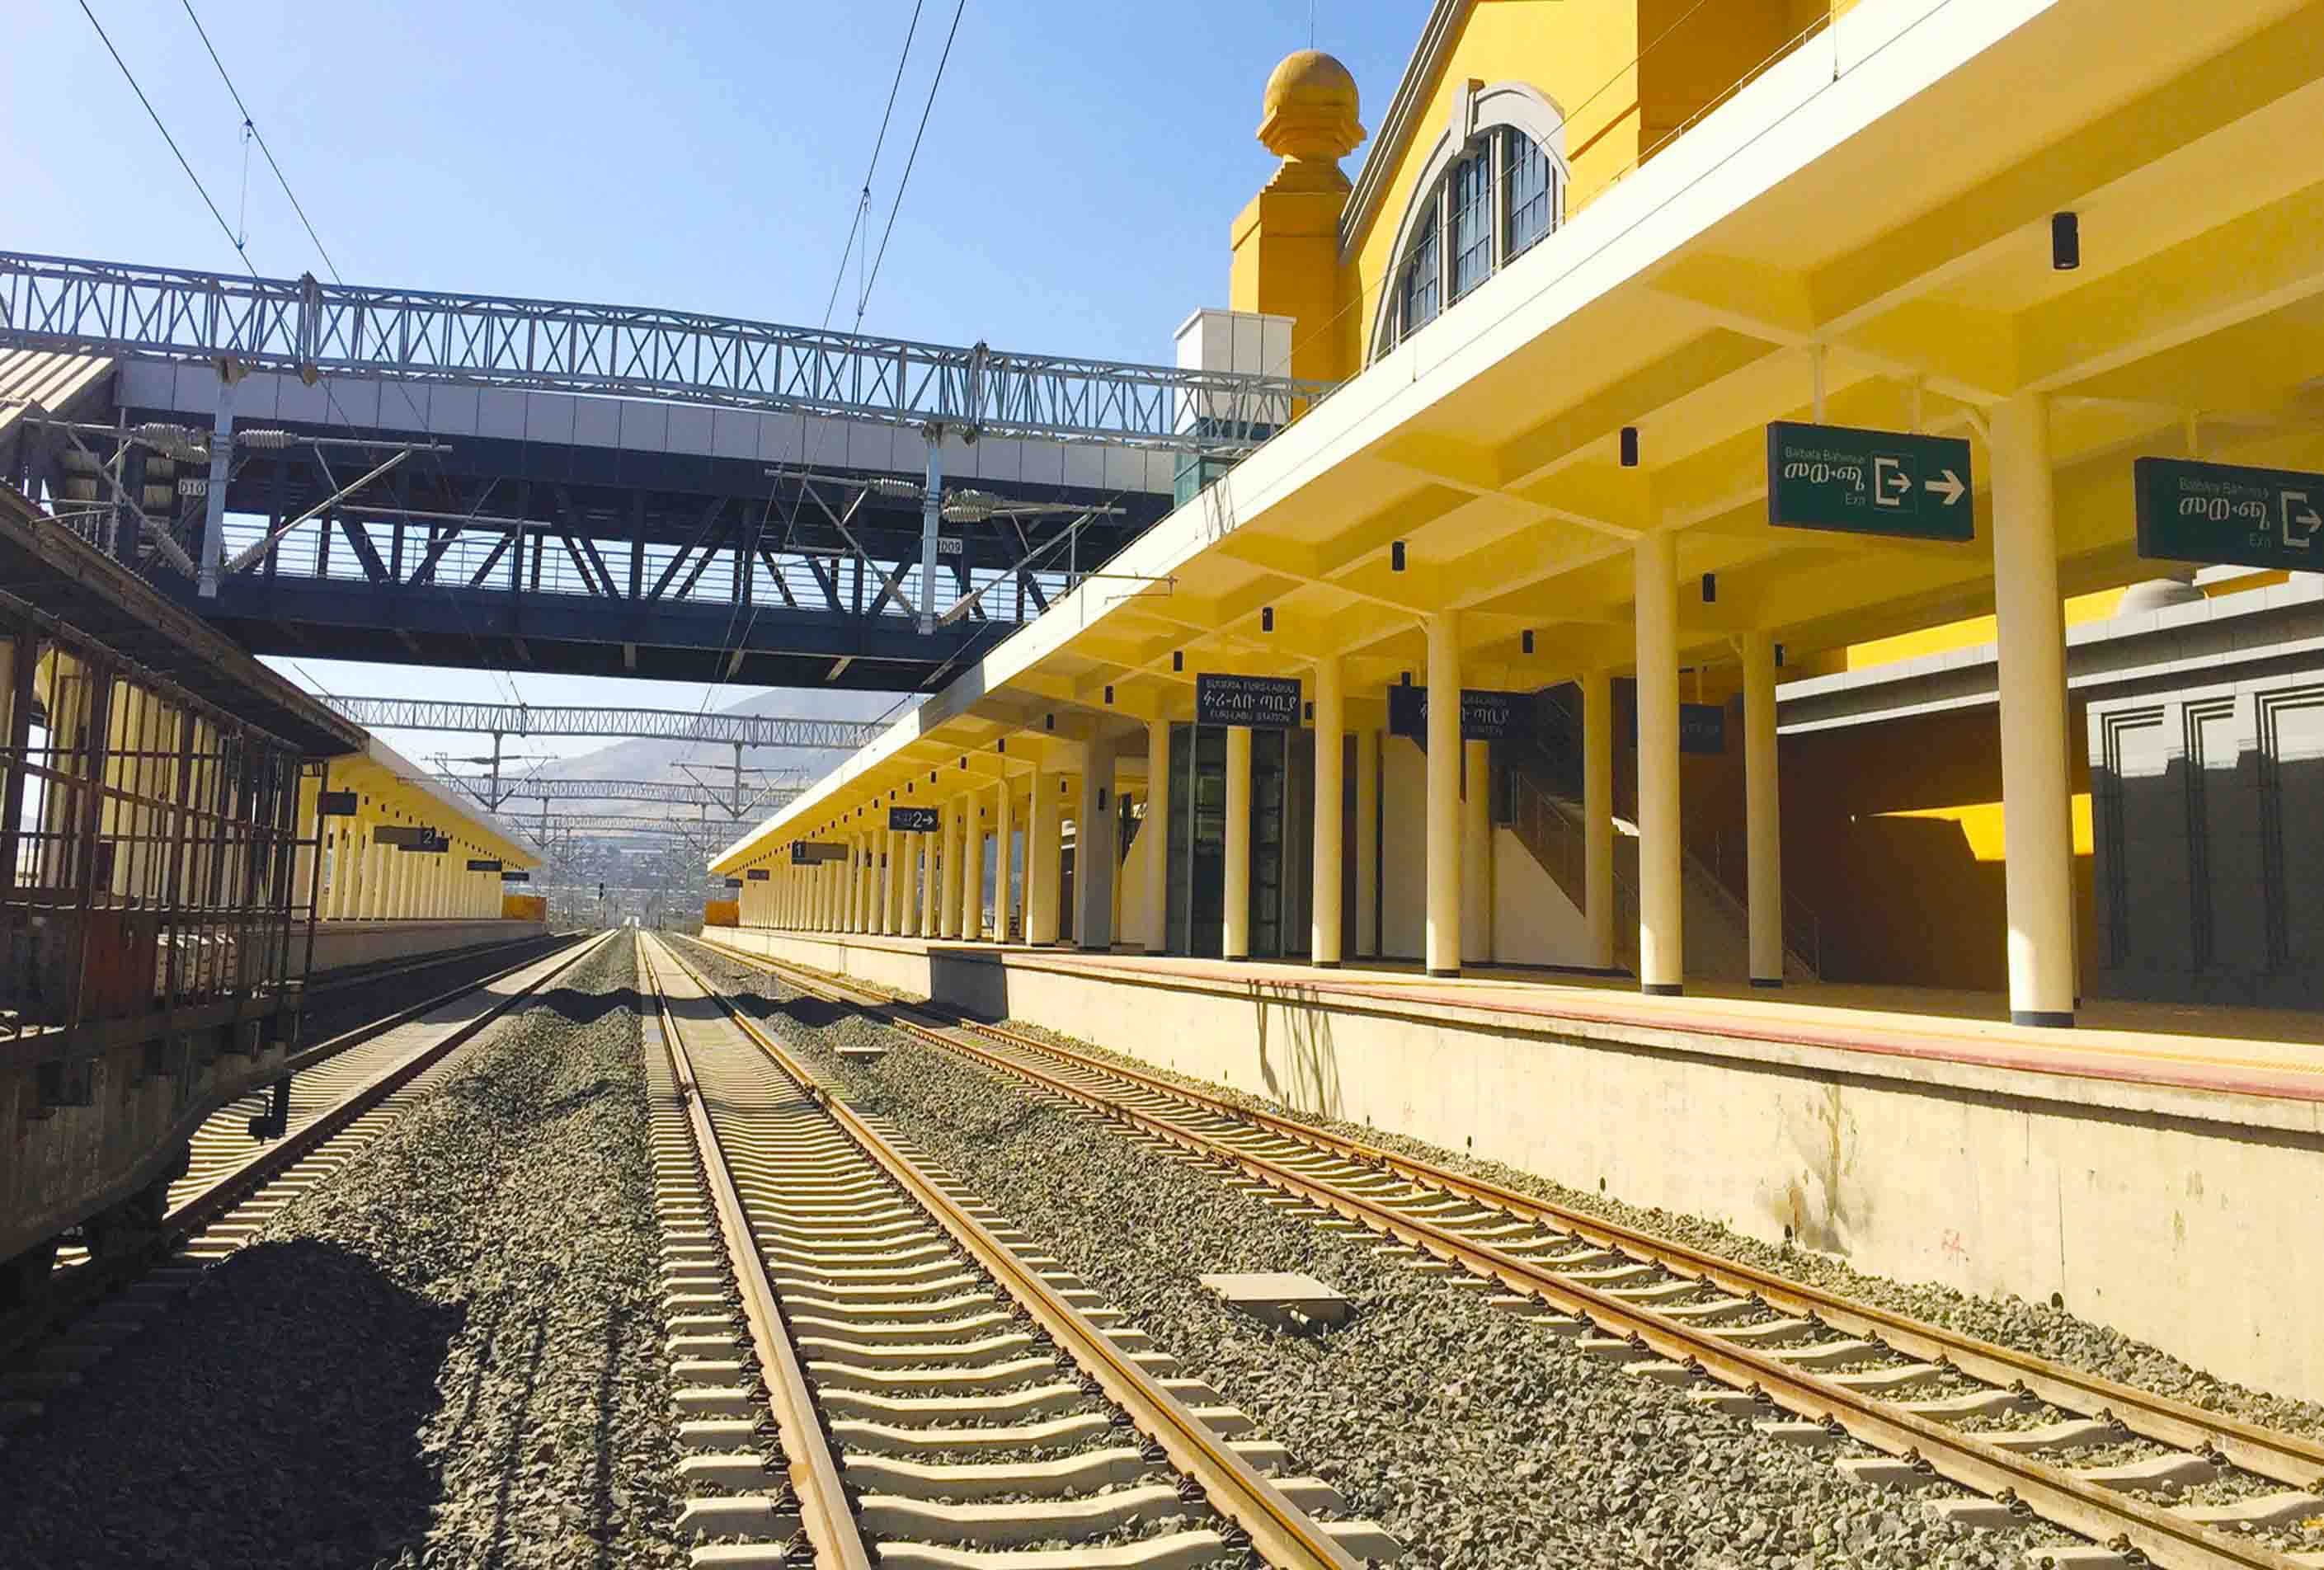 East Africa plays host to two of the continent's most modernised rail transport system. Regional economic giants, Kenya and Ethiopia have both launched Standard Gauge Railways (SGR) in less than a year.